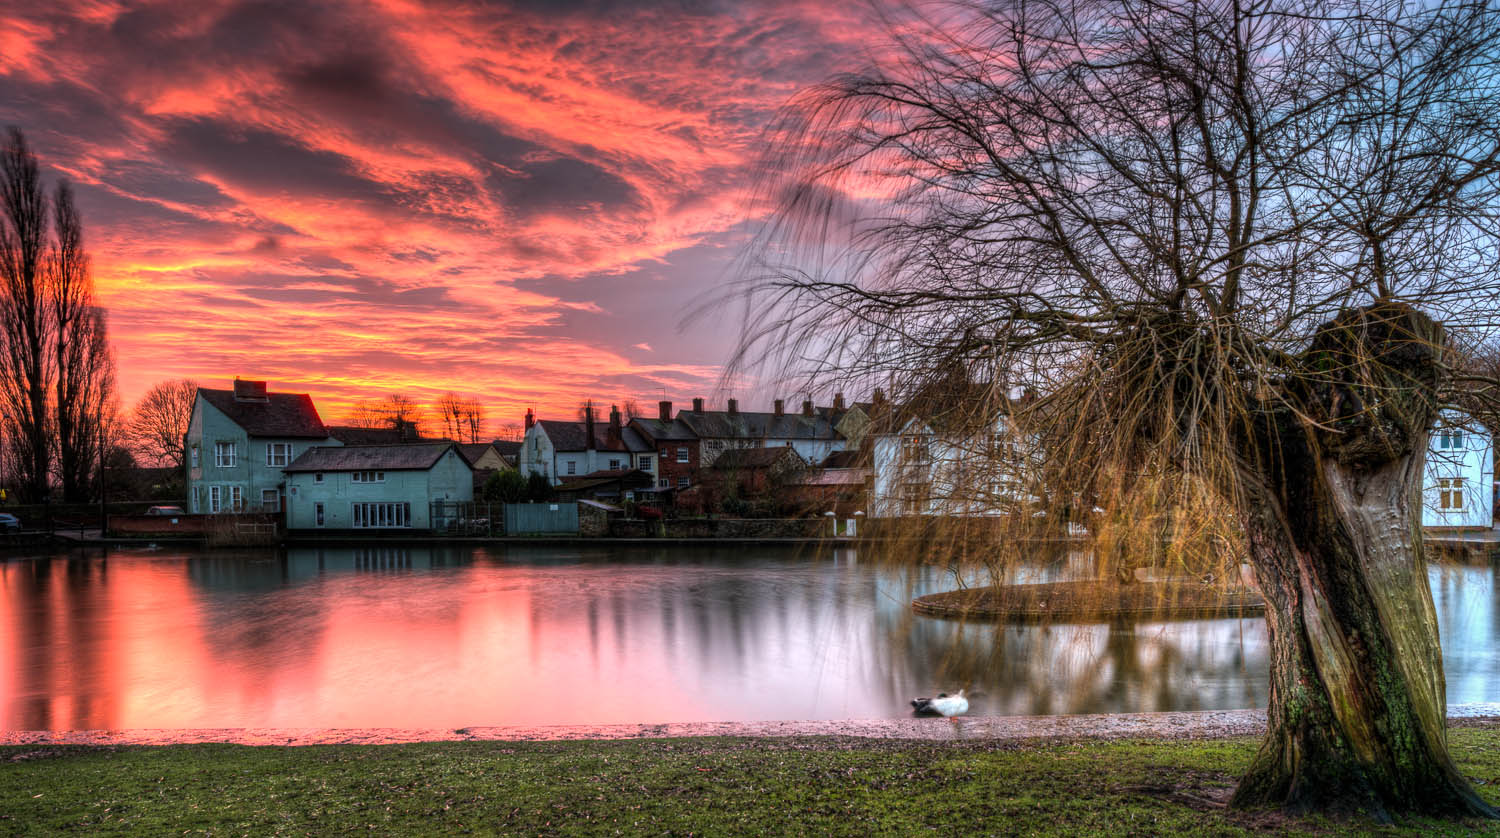 Sunrise on New Years Day over Doctors Pond, Great Dunmow